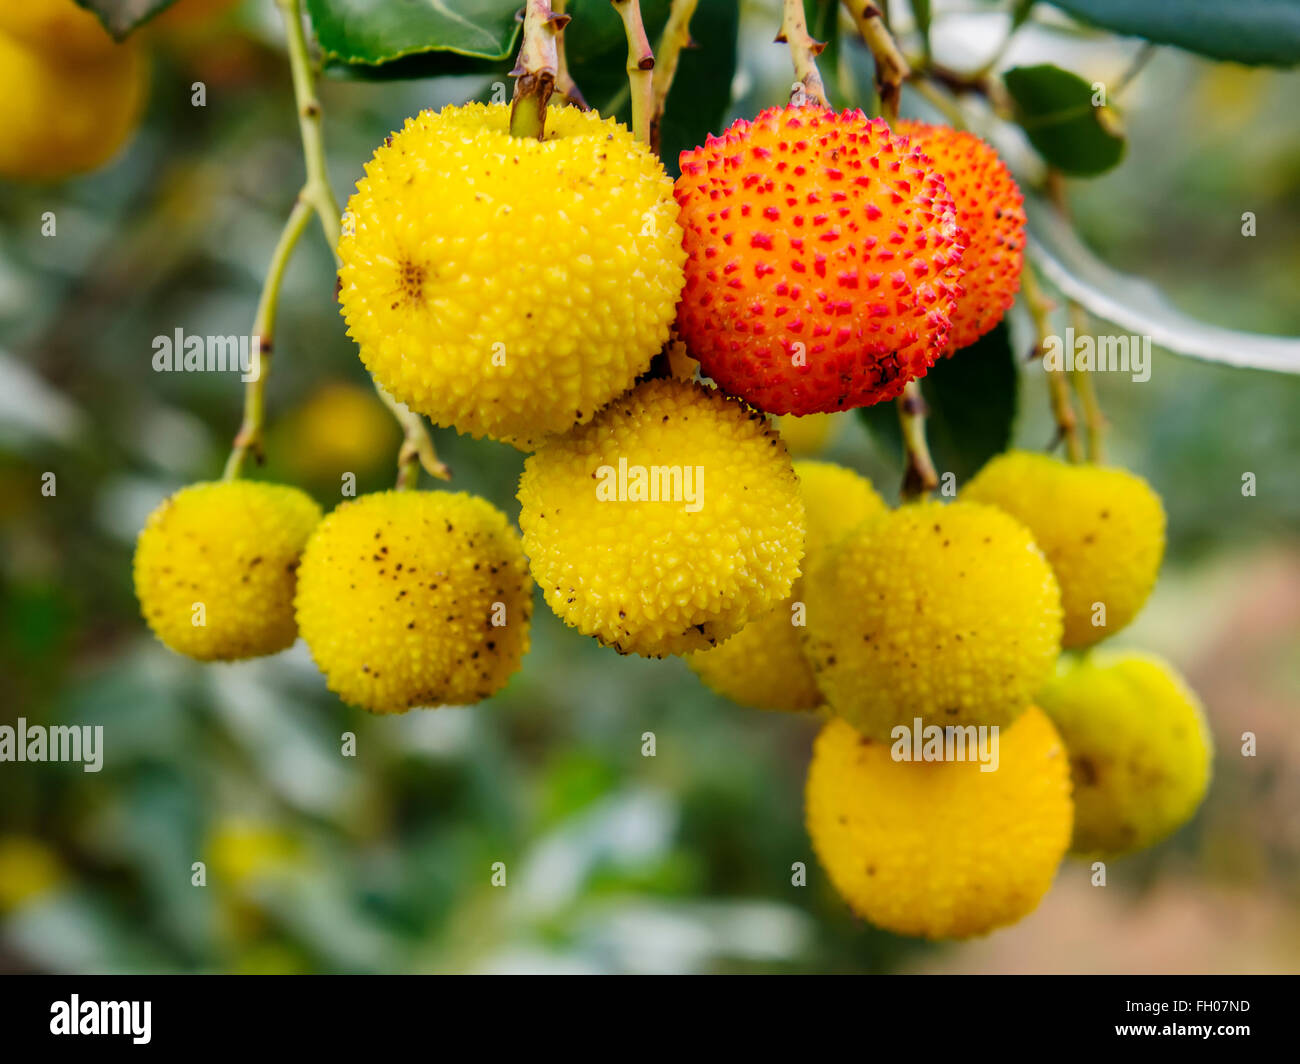 Madrone arbutus berries tree - Stock Image